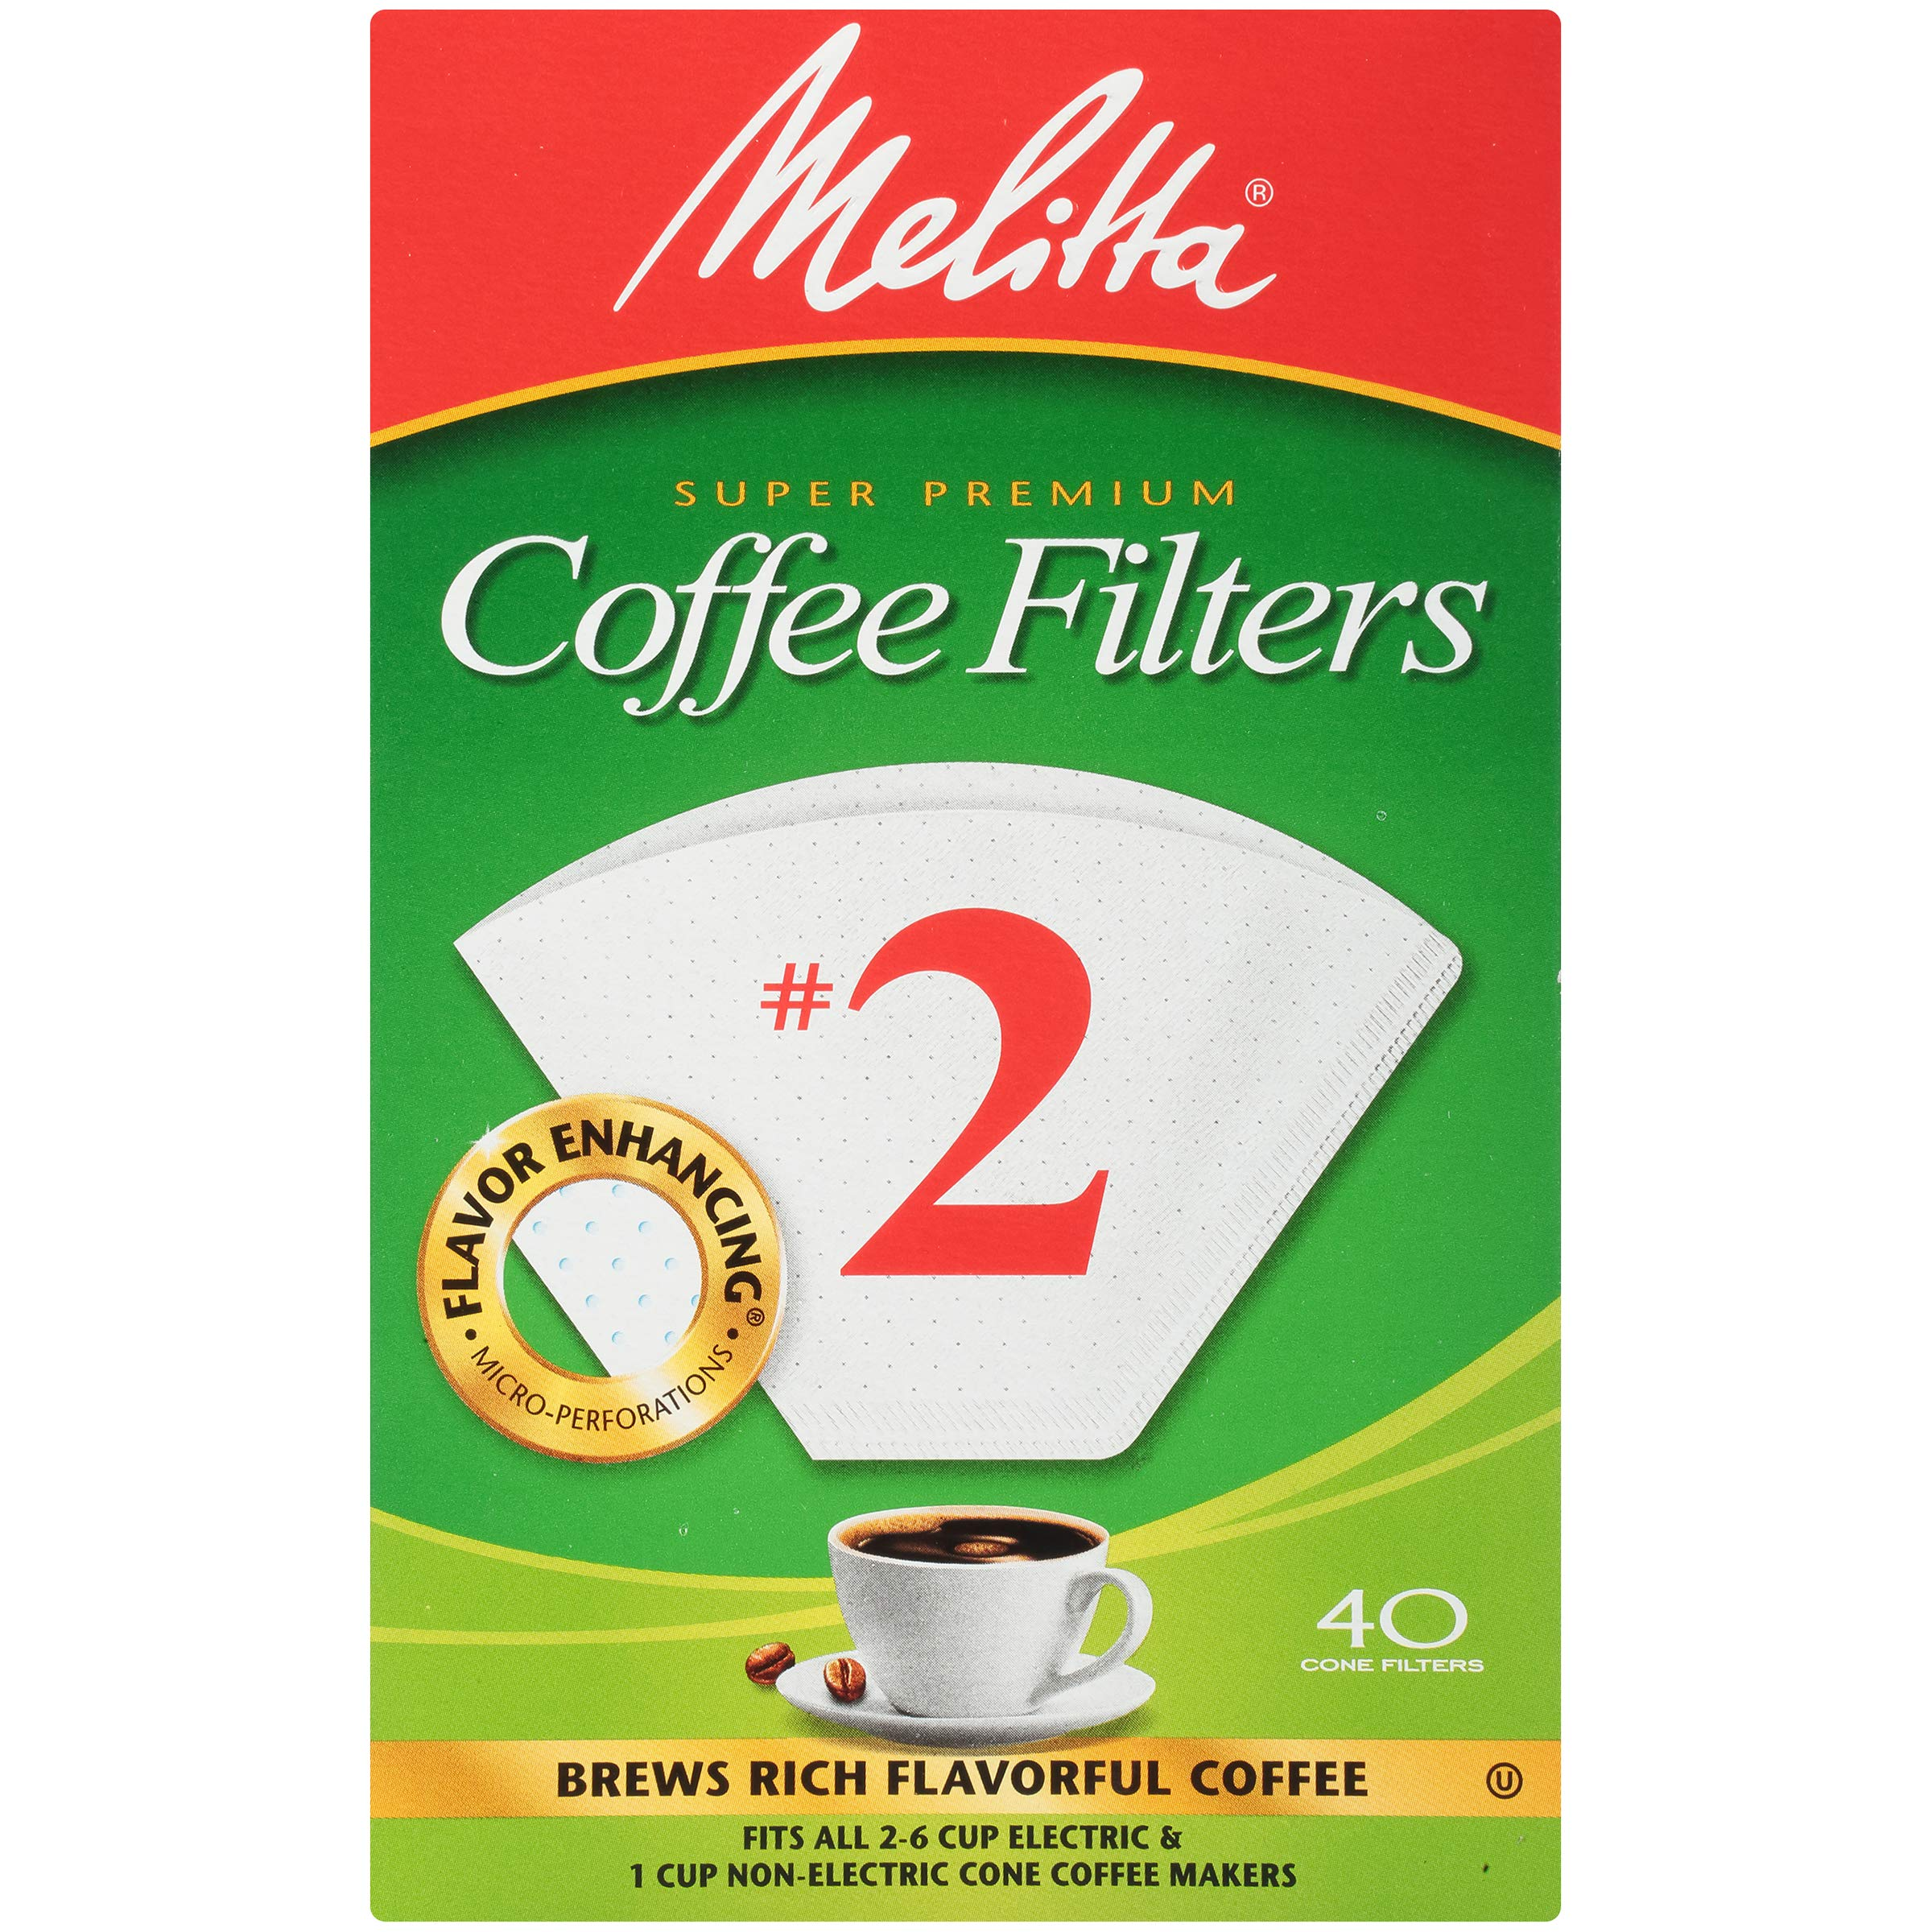 Melitta #2 Cone Coffee Filters, White, 40 Count (Pack of 12)